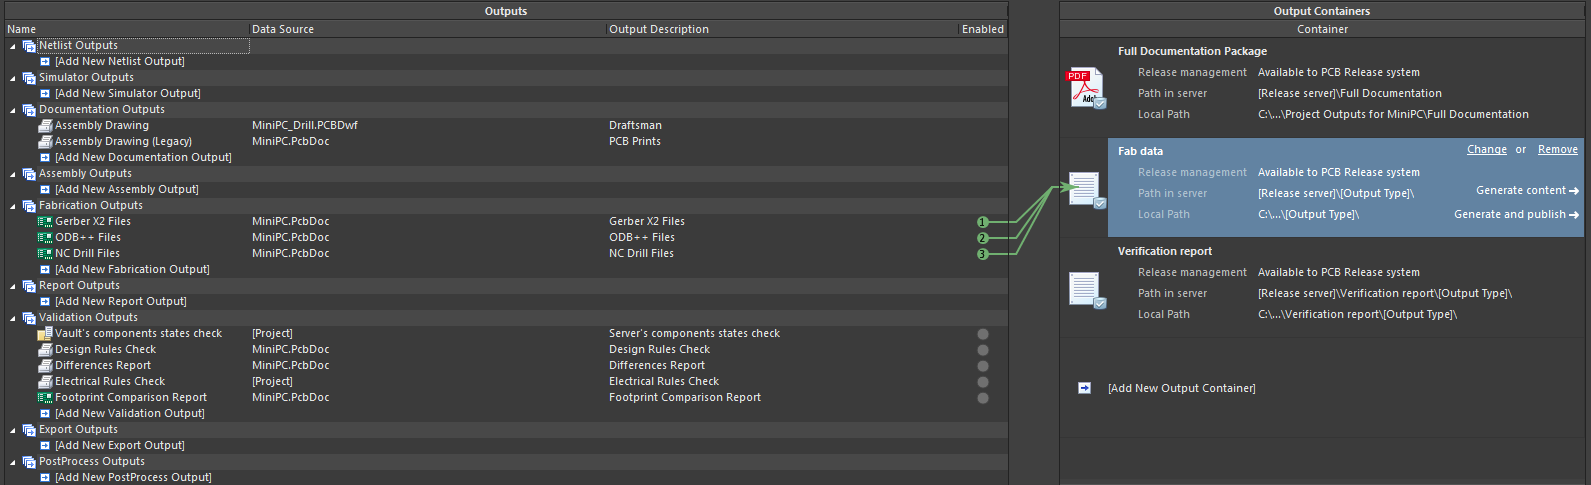 Altium Designer screenshot showing configuration of output job needed for the build system